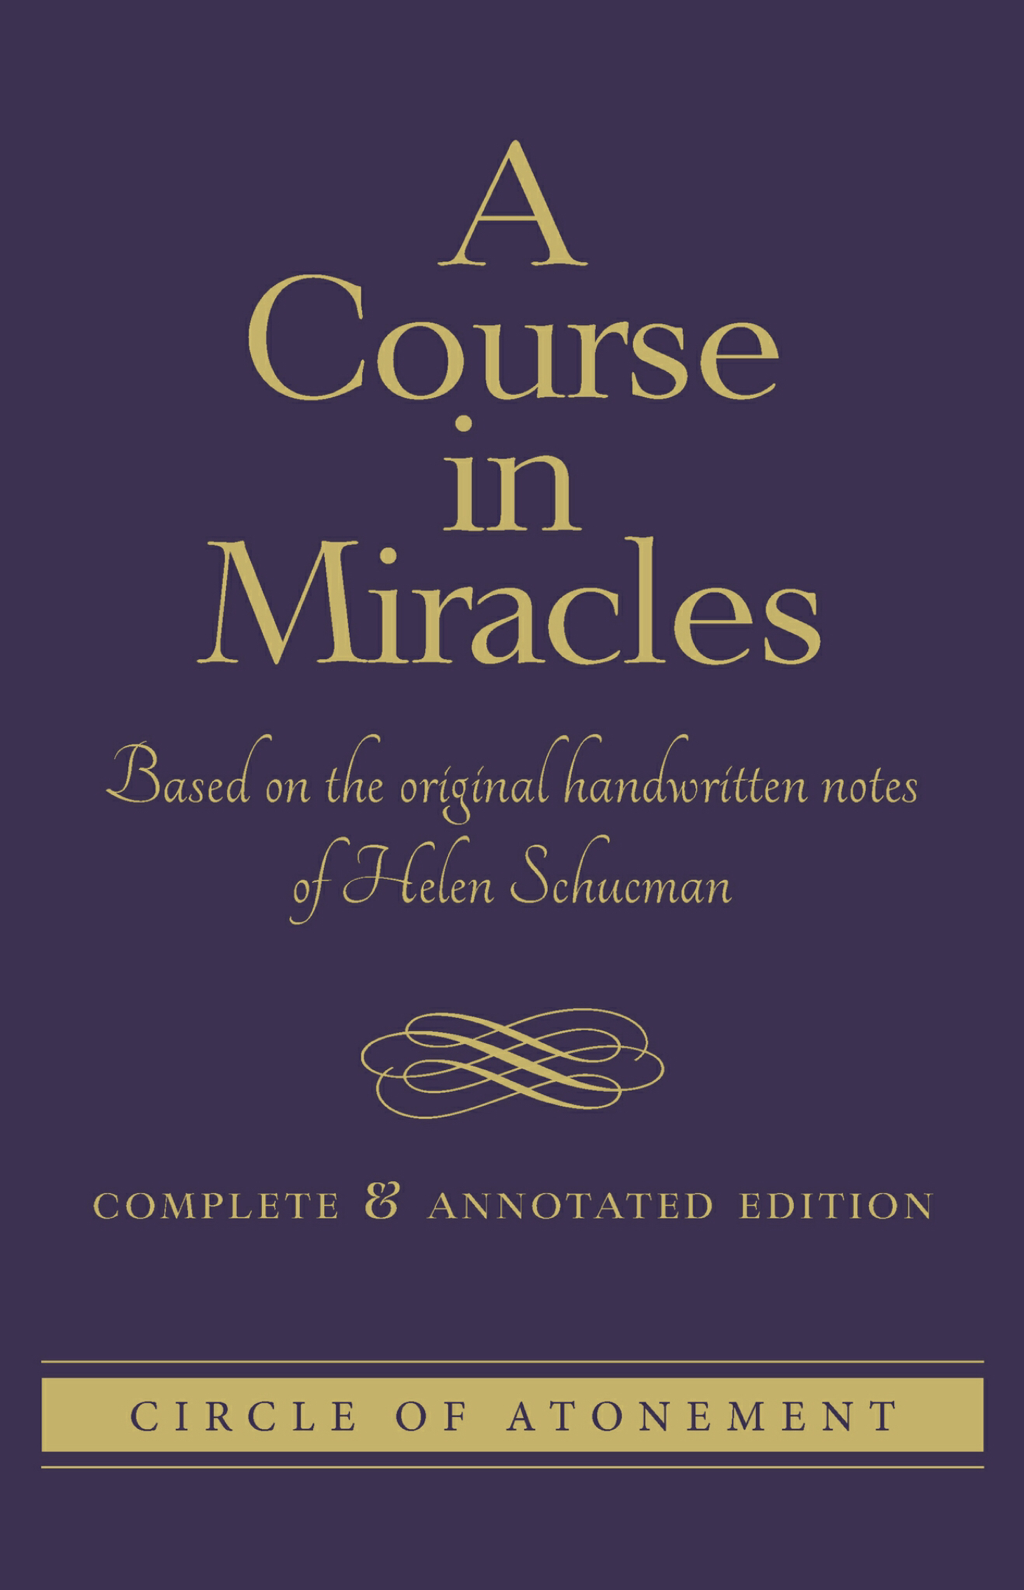 Image of A Course In Miracles, Complete and Annotated Edition (CE) book cover